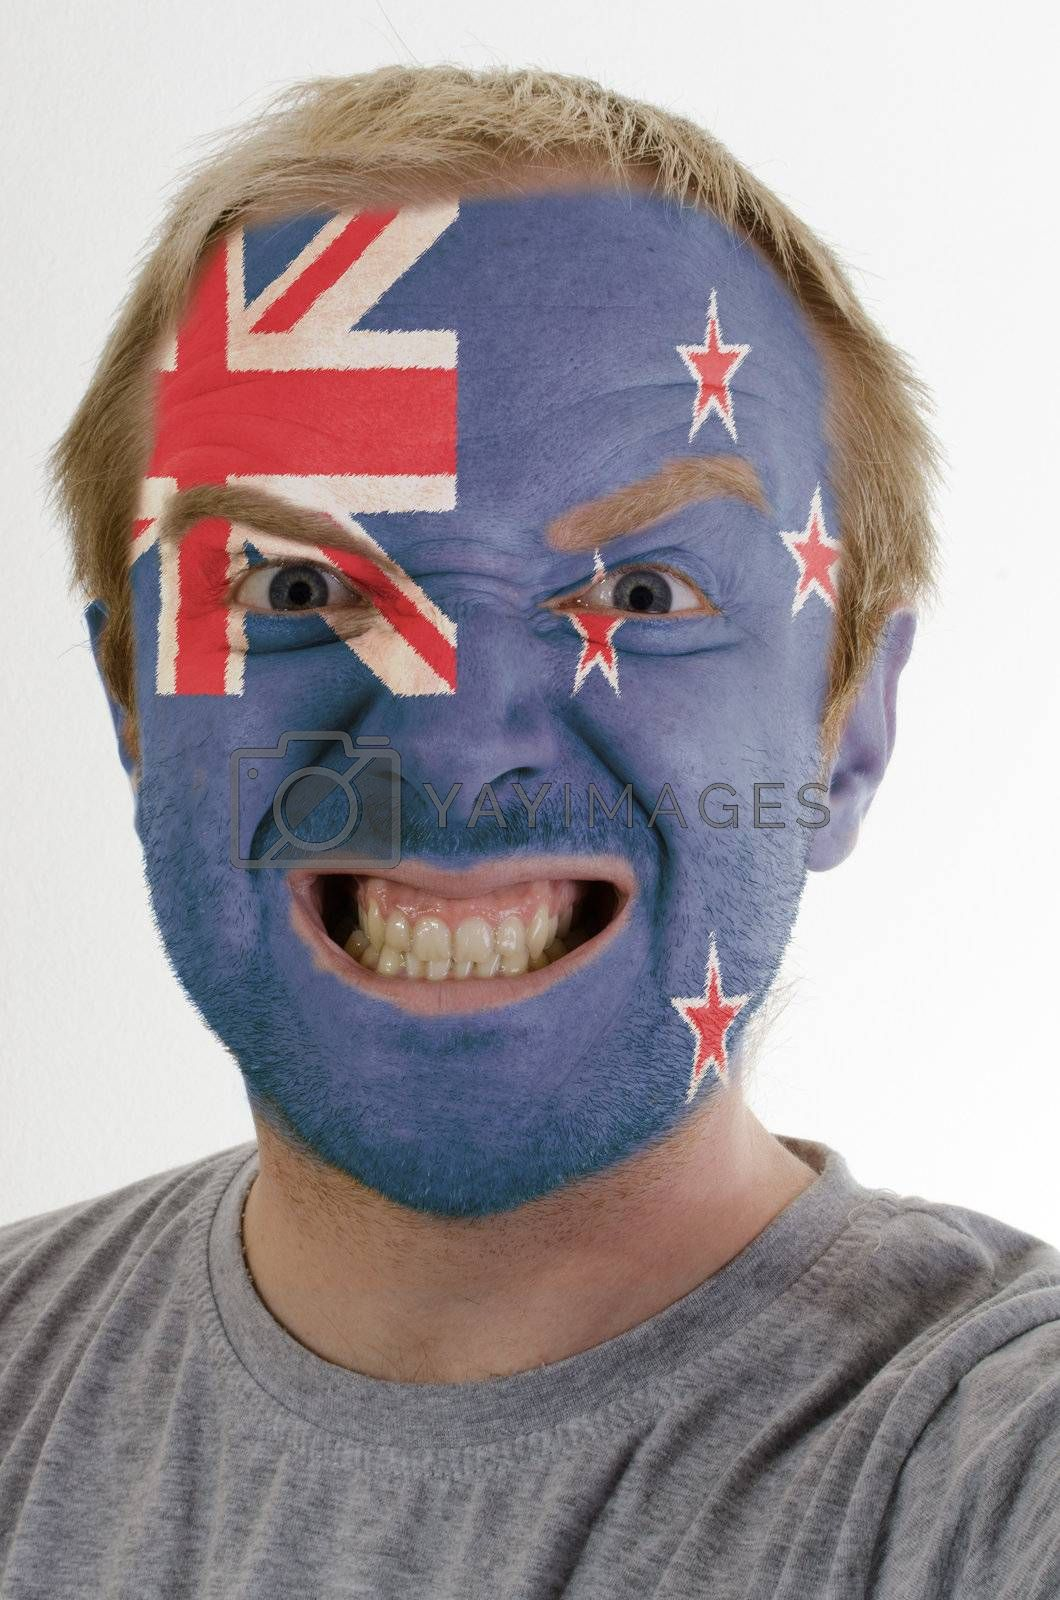 High key portrait of an angry man whose face is painted in colors of new zealand flag